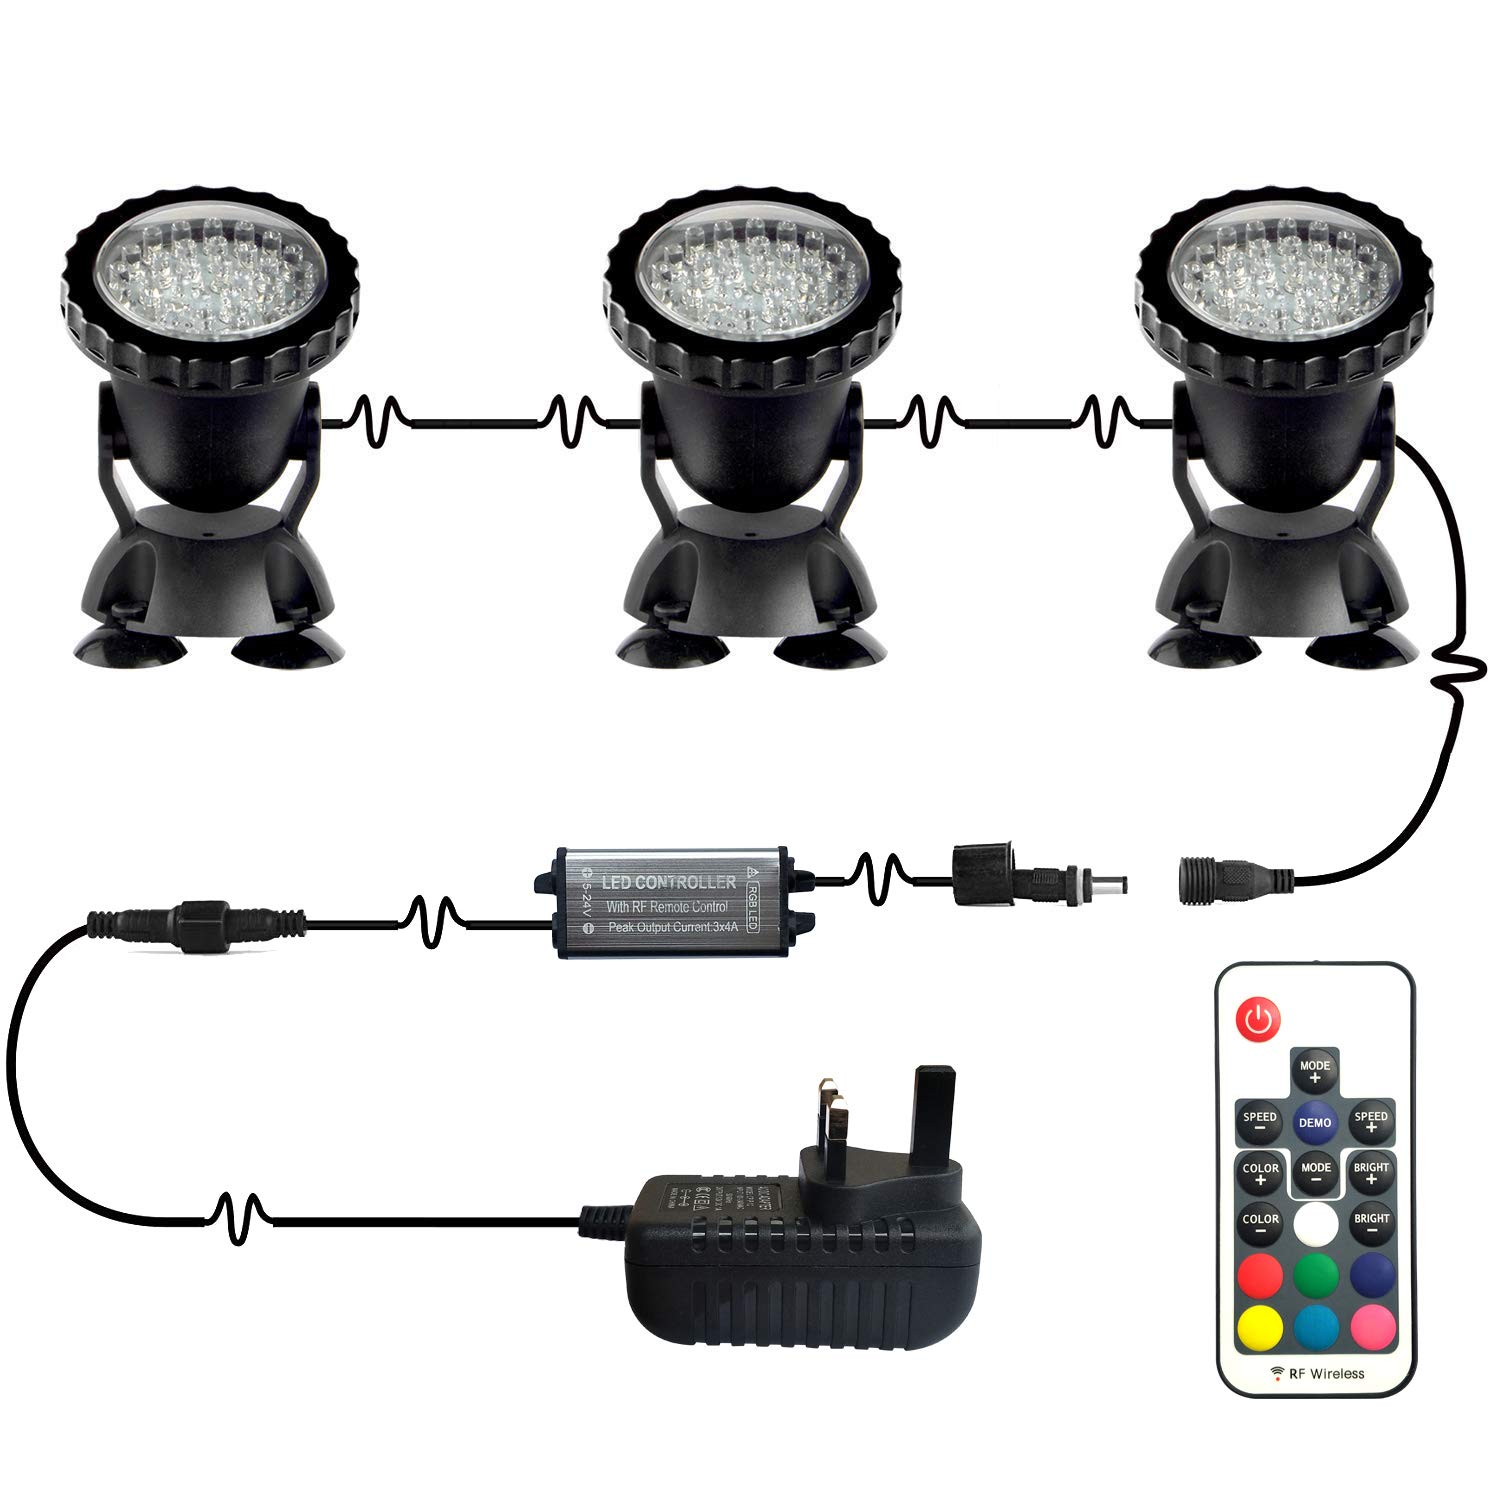 d9e0cfc994c Pond Lights Upgraded Remote Control Submersible Lamp IP68 Totally Full  Waterproof Underwater Aquarium Spotlight 36-LED Multi-Color Decoration  Landscape Lamp ...